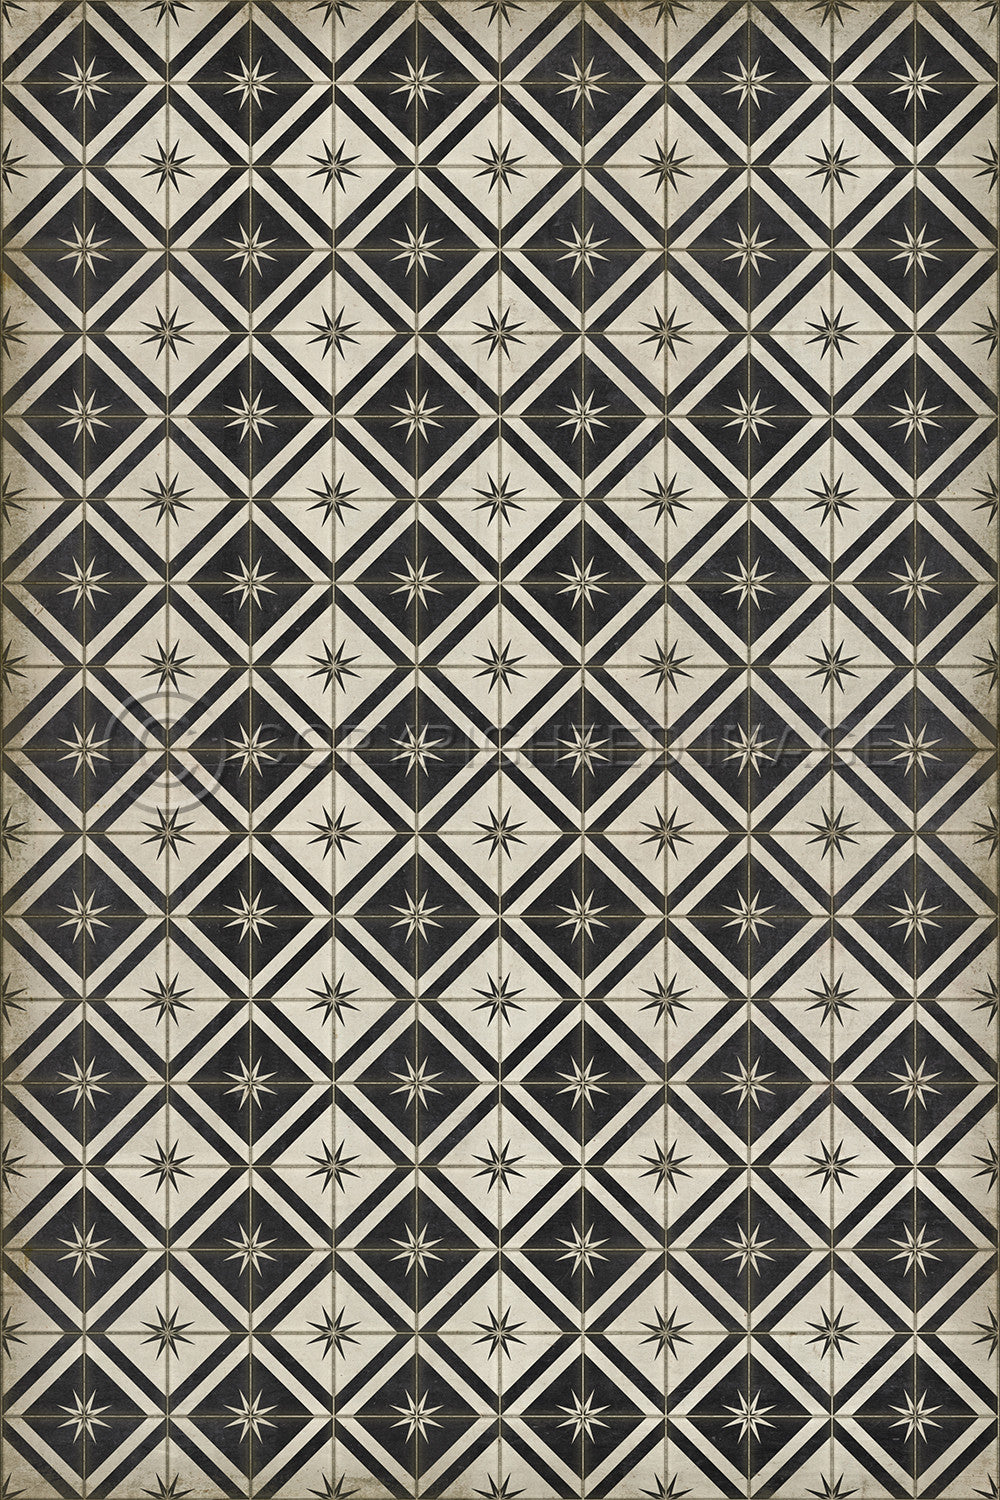 Lehigh Valley Furniture Flooring Vinyl Floorcloth Moravian Star Bethlehem Star Pet Safe Kid Friendly Rug Vintage Tile